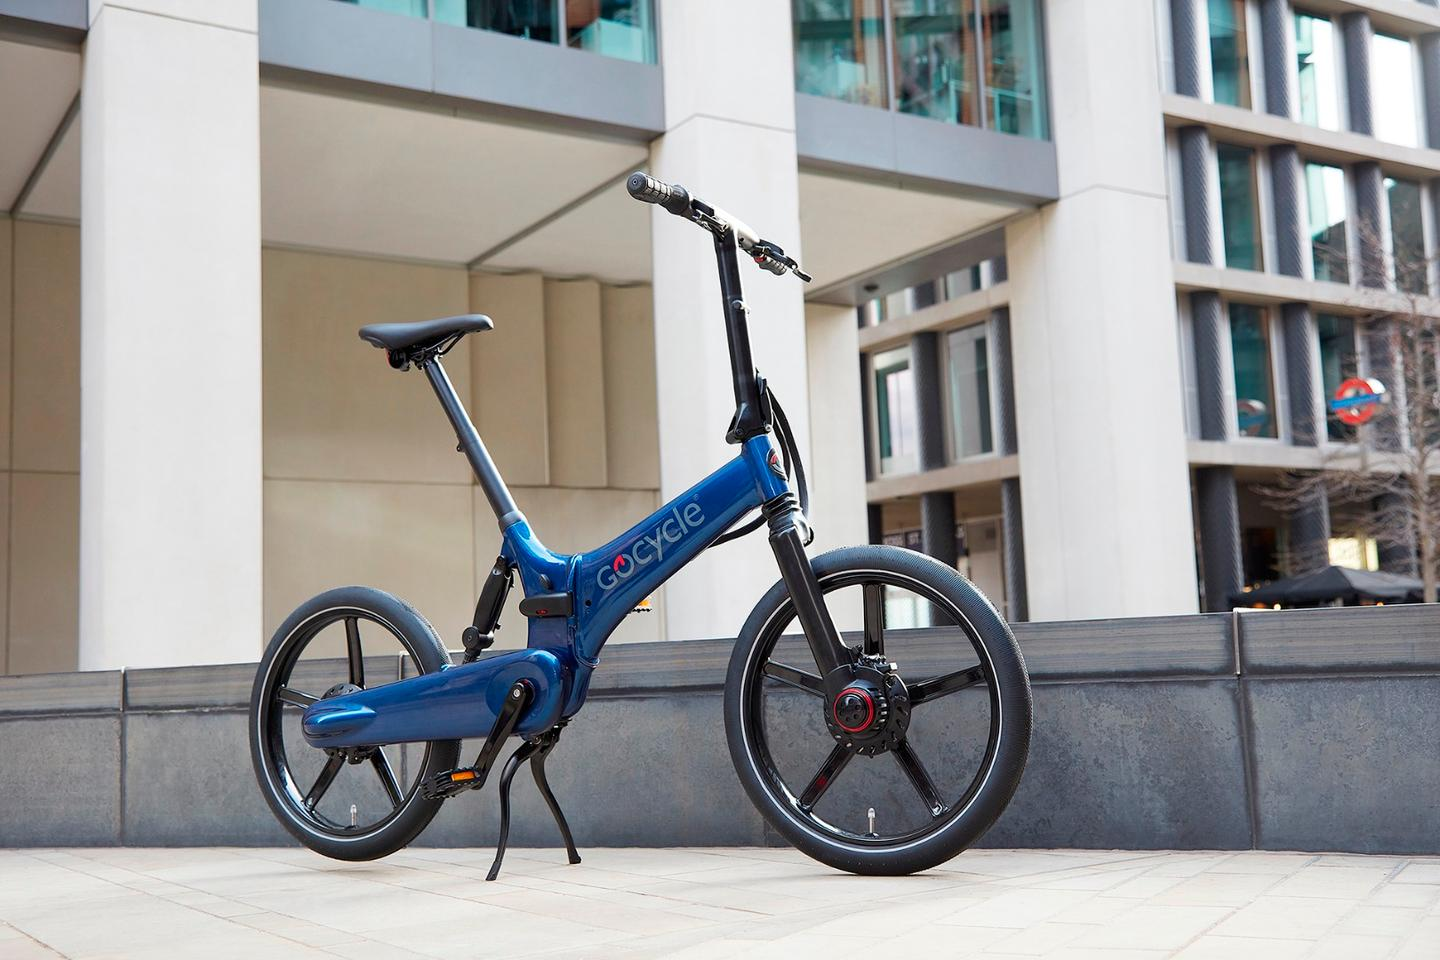 The Gocycle GX will be officially launched this Spring (Northern Hemisphere) and is available now for preorder in a choice of three colors